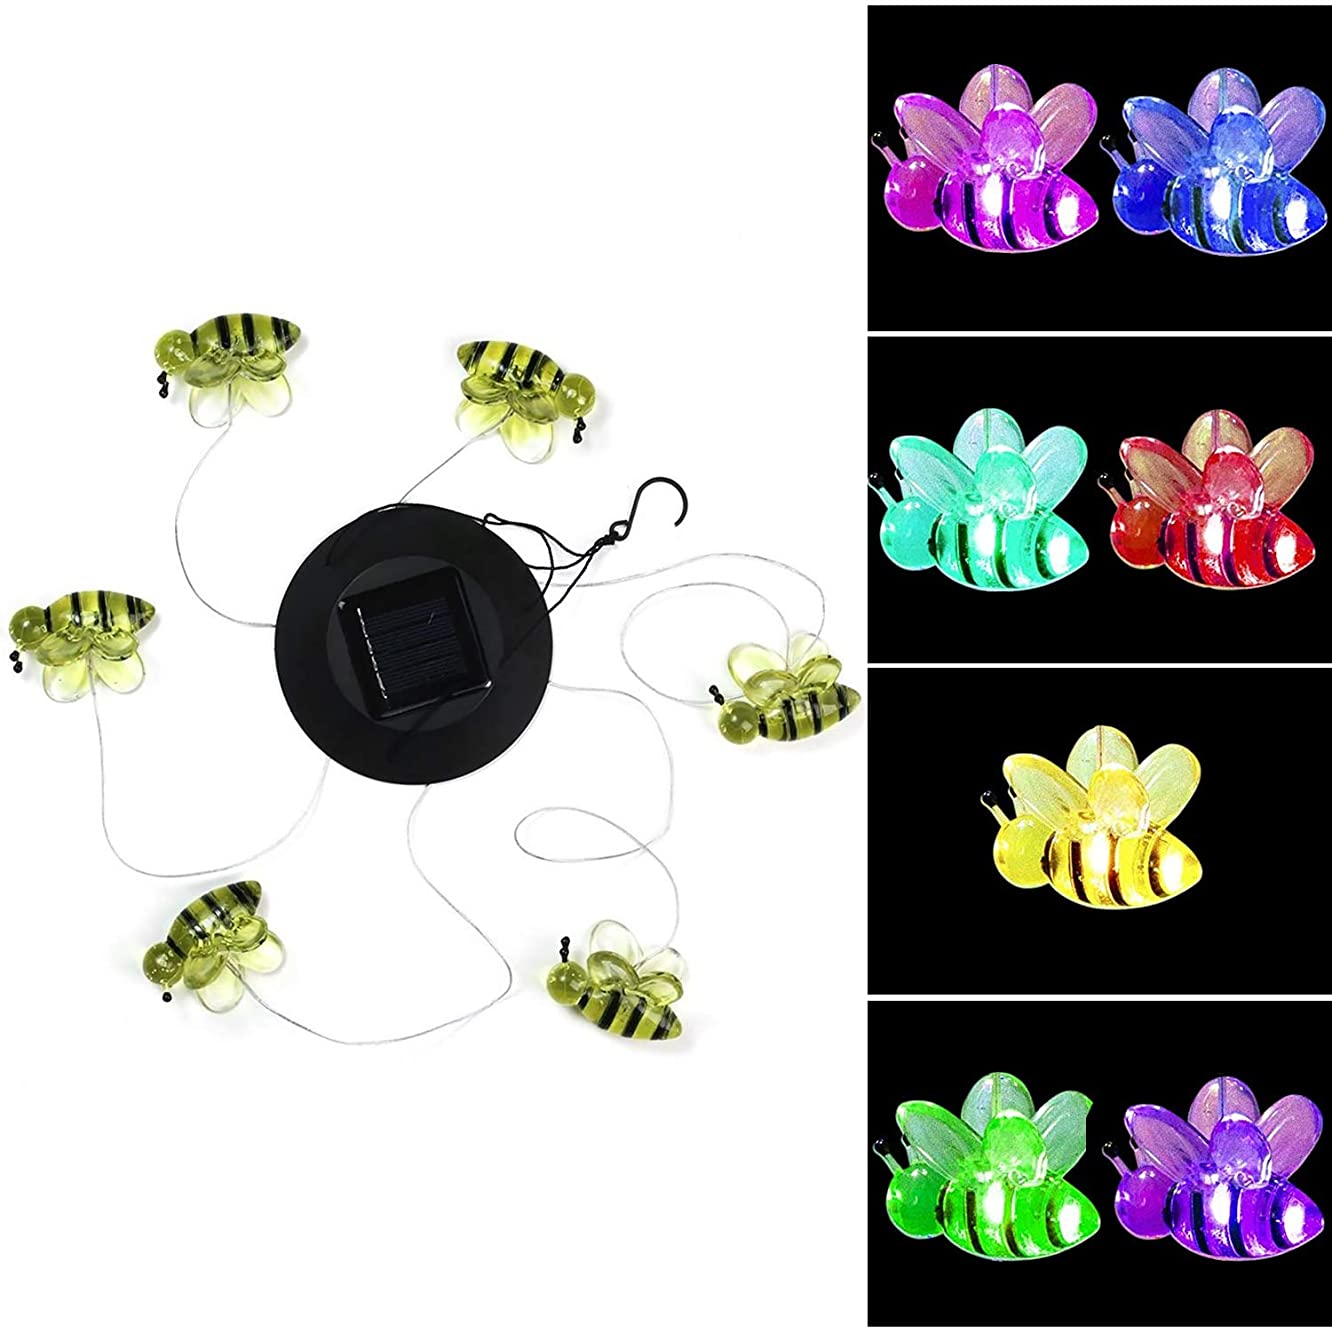 LED Solar Color Changing Wind Chime Outdoor, Waterproof Solar Mobile Wind Chime with Battery,Eco-Friendly and Saving Electricity Fee,for Home/Night/Yard/Party/Festival/Patio/Garden (Bee Wind Chime)